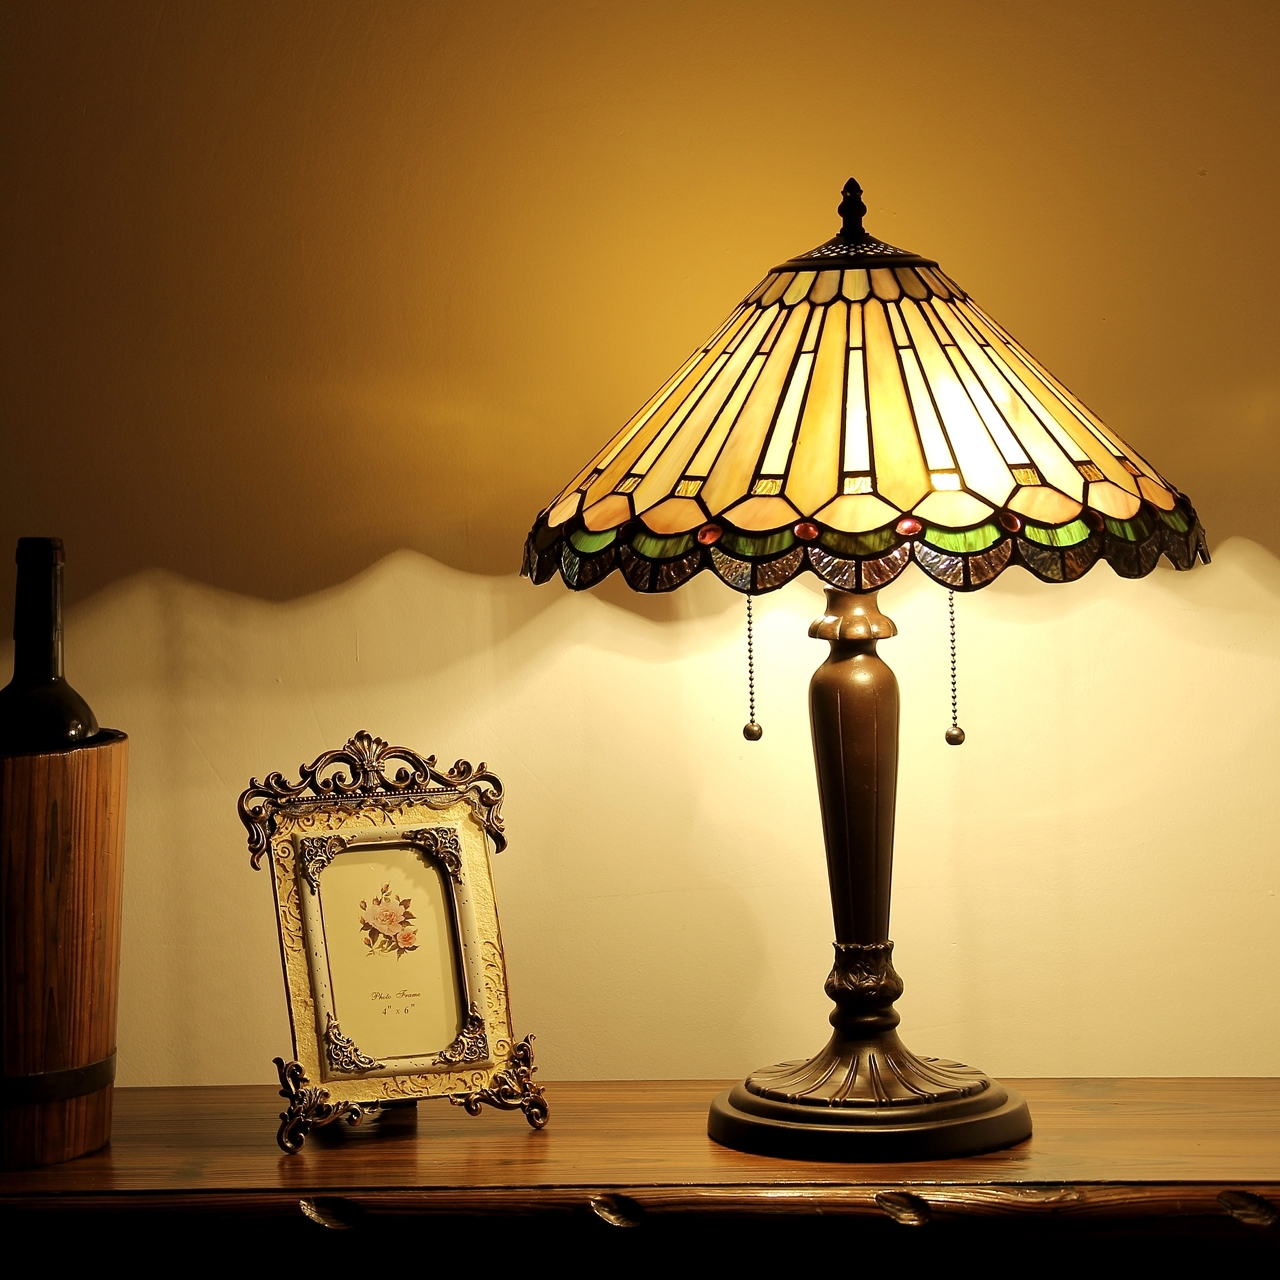 Chloe lighting inc tiffany lamp tiffany lamps tiffany style chloe lighting inez tiffany style 2 light mission table lamp geotapseo Choice Image